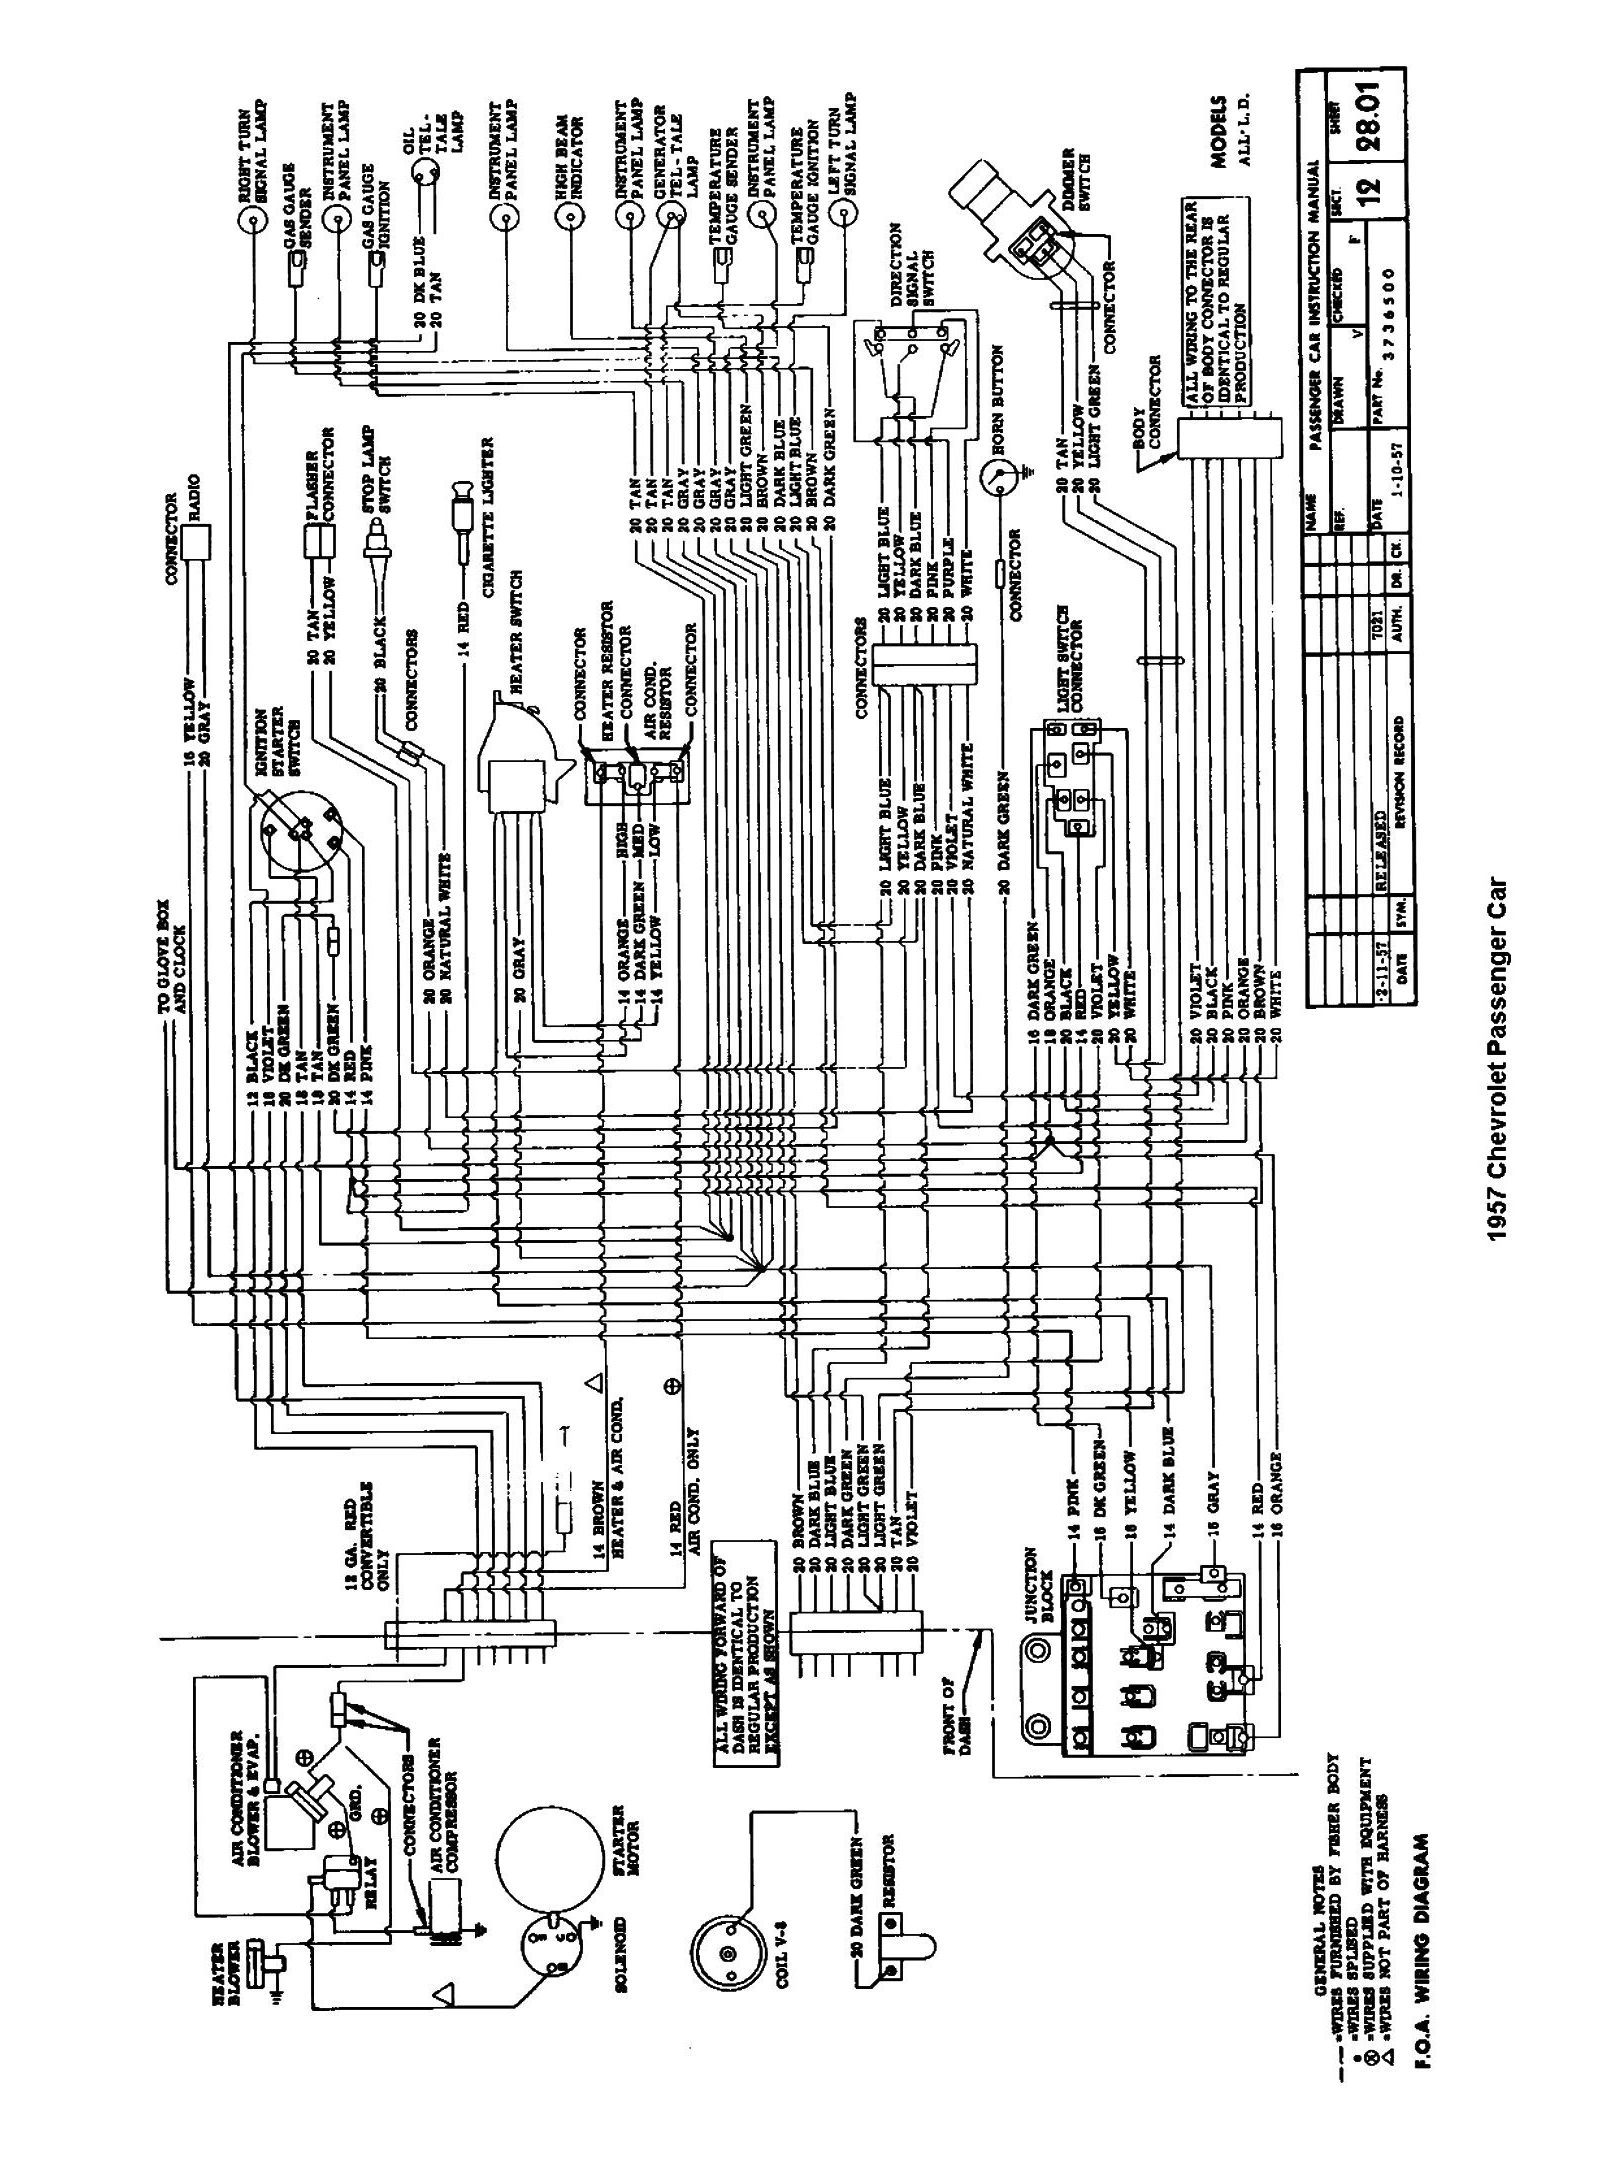 1948 Chevy Wiring Diagram Schemes Jeep Distributor For A 1965 Diagrams